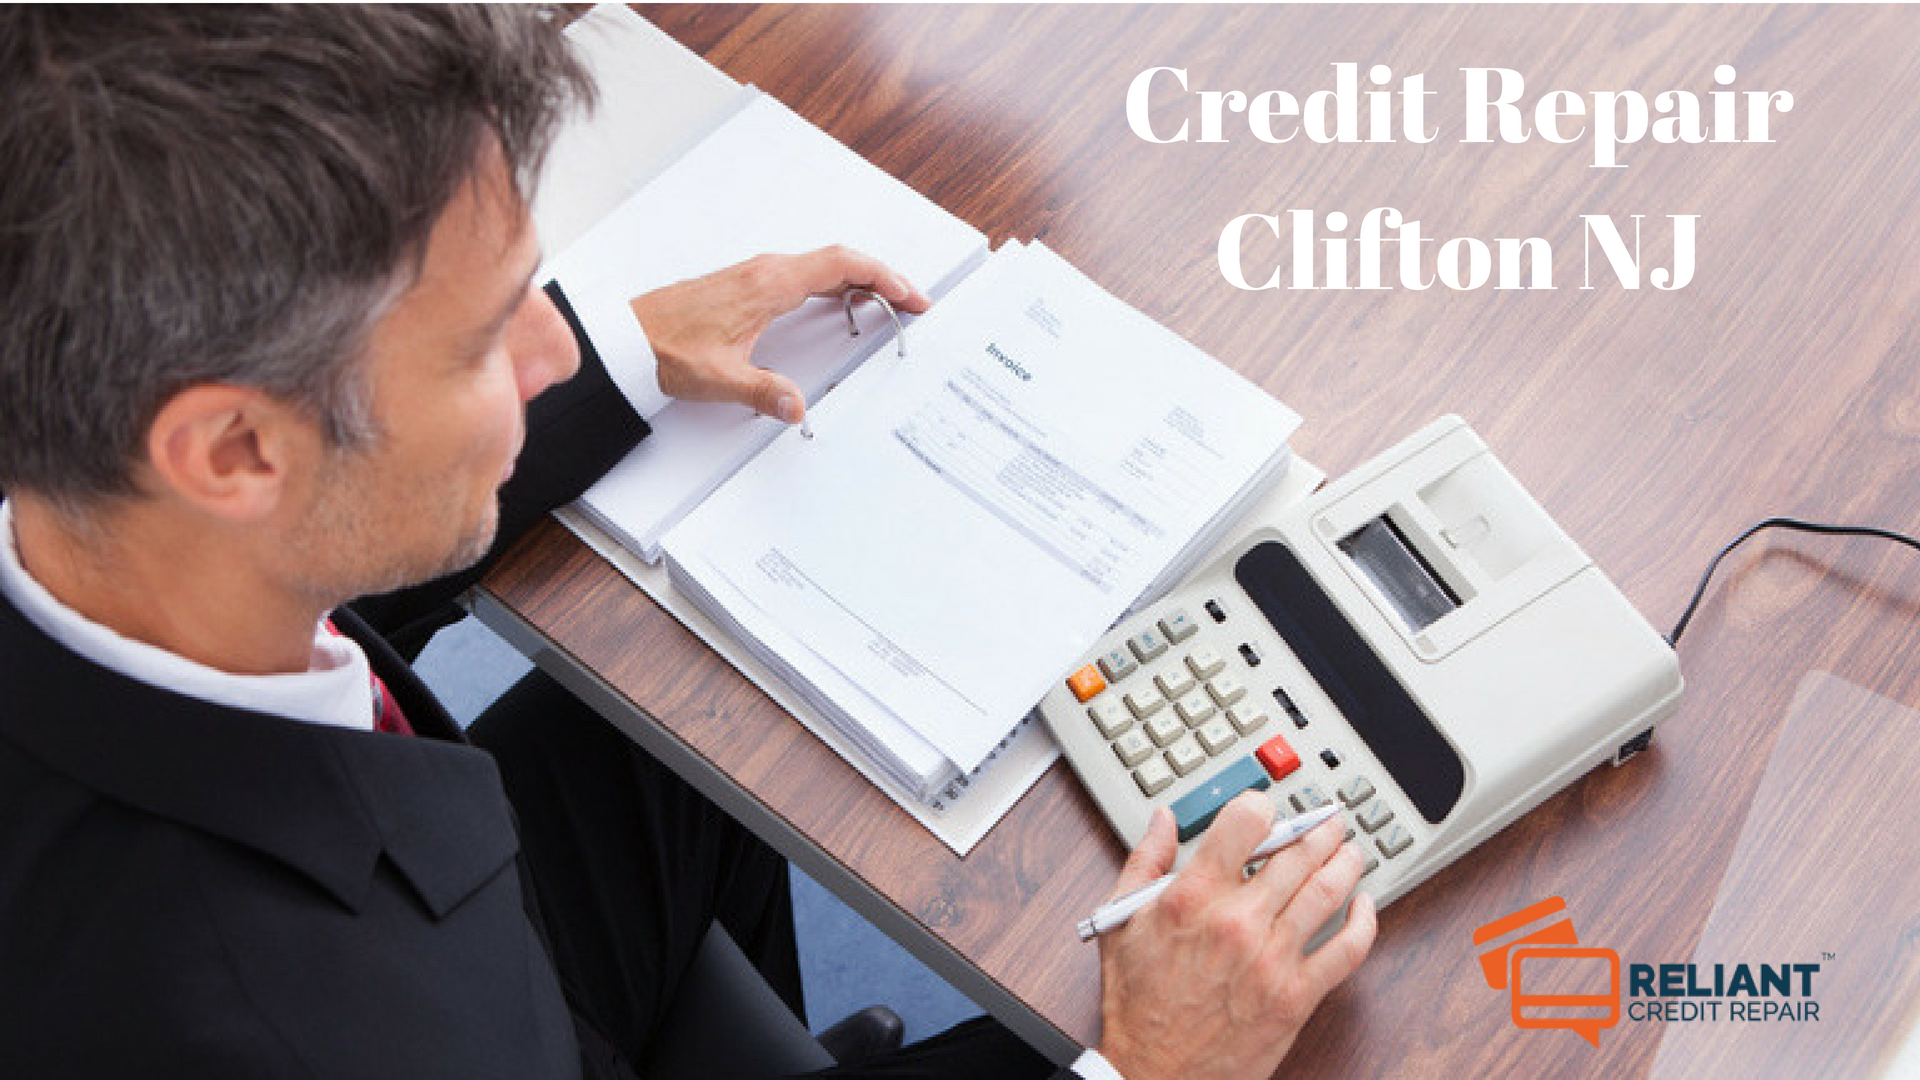 Credit Repair Clifton NJ